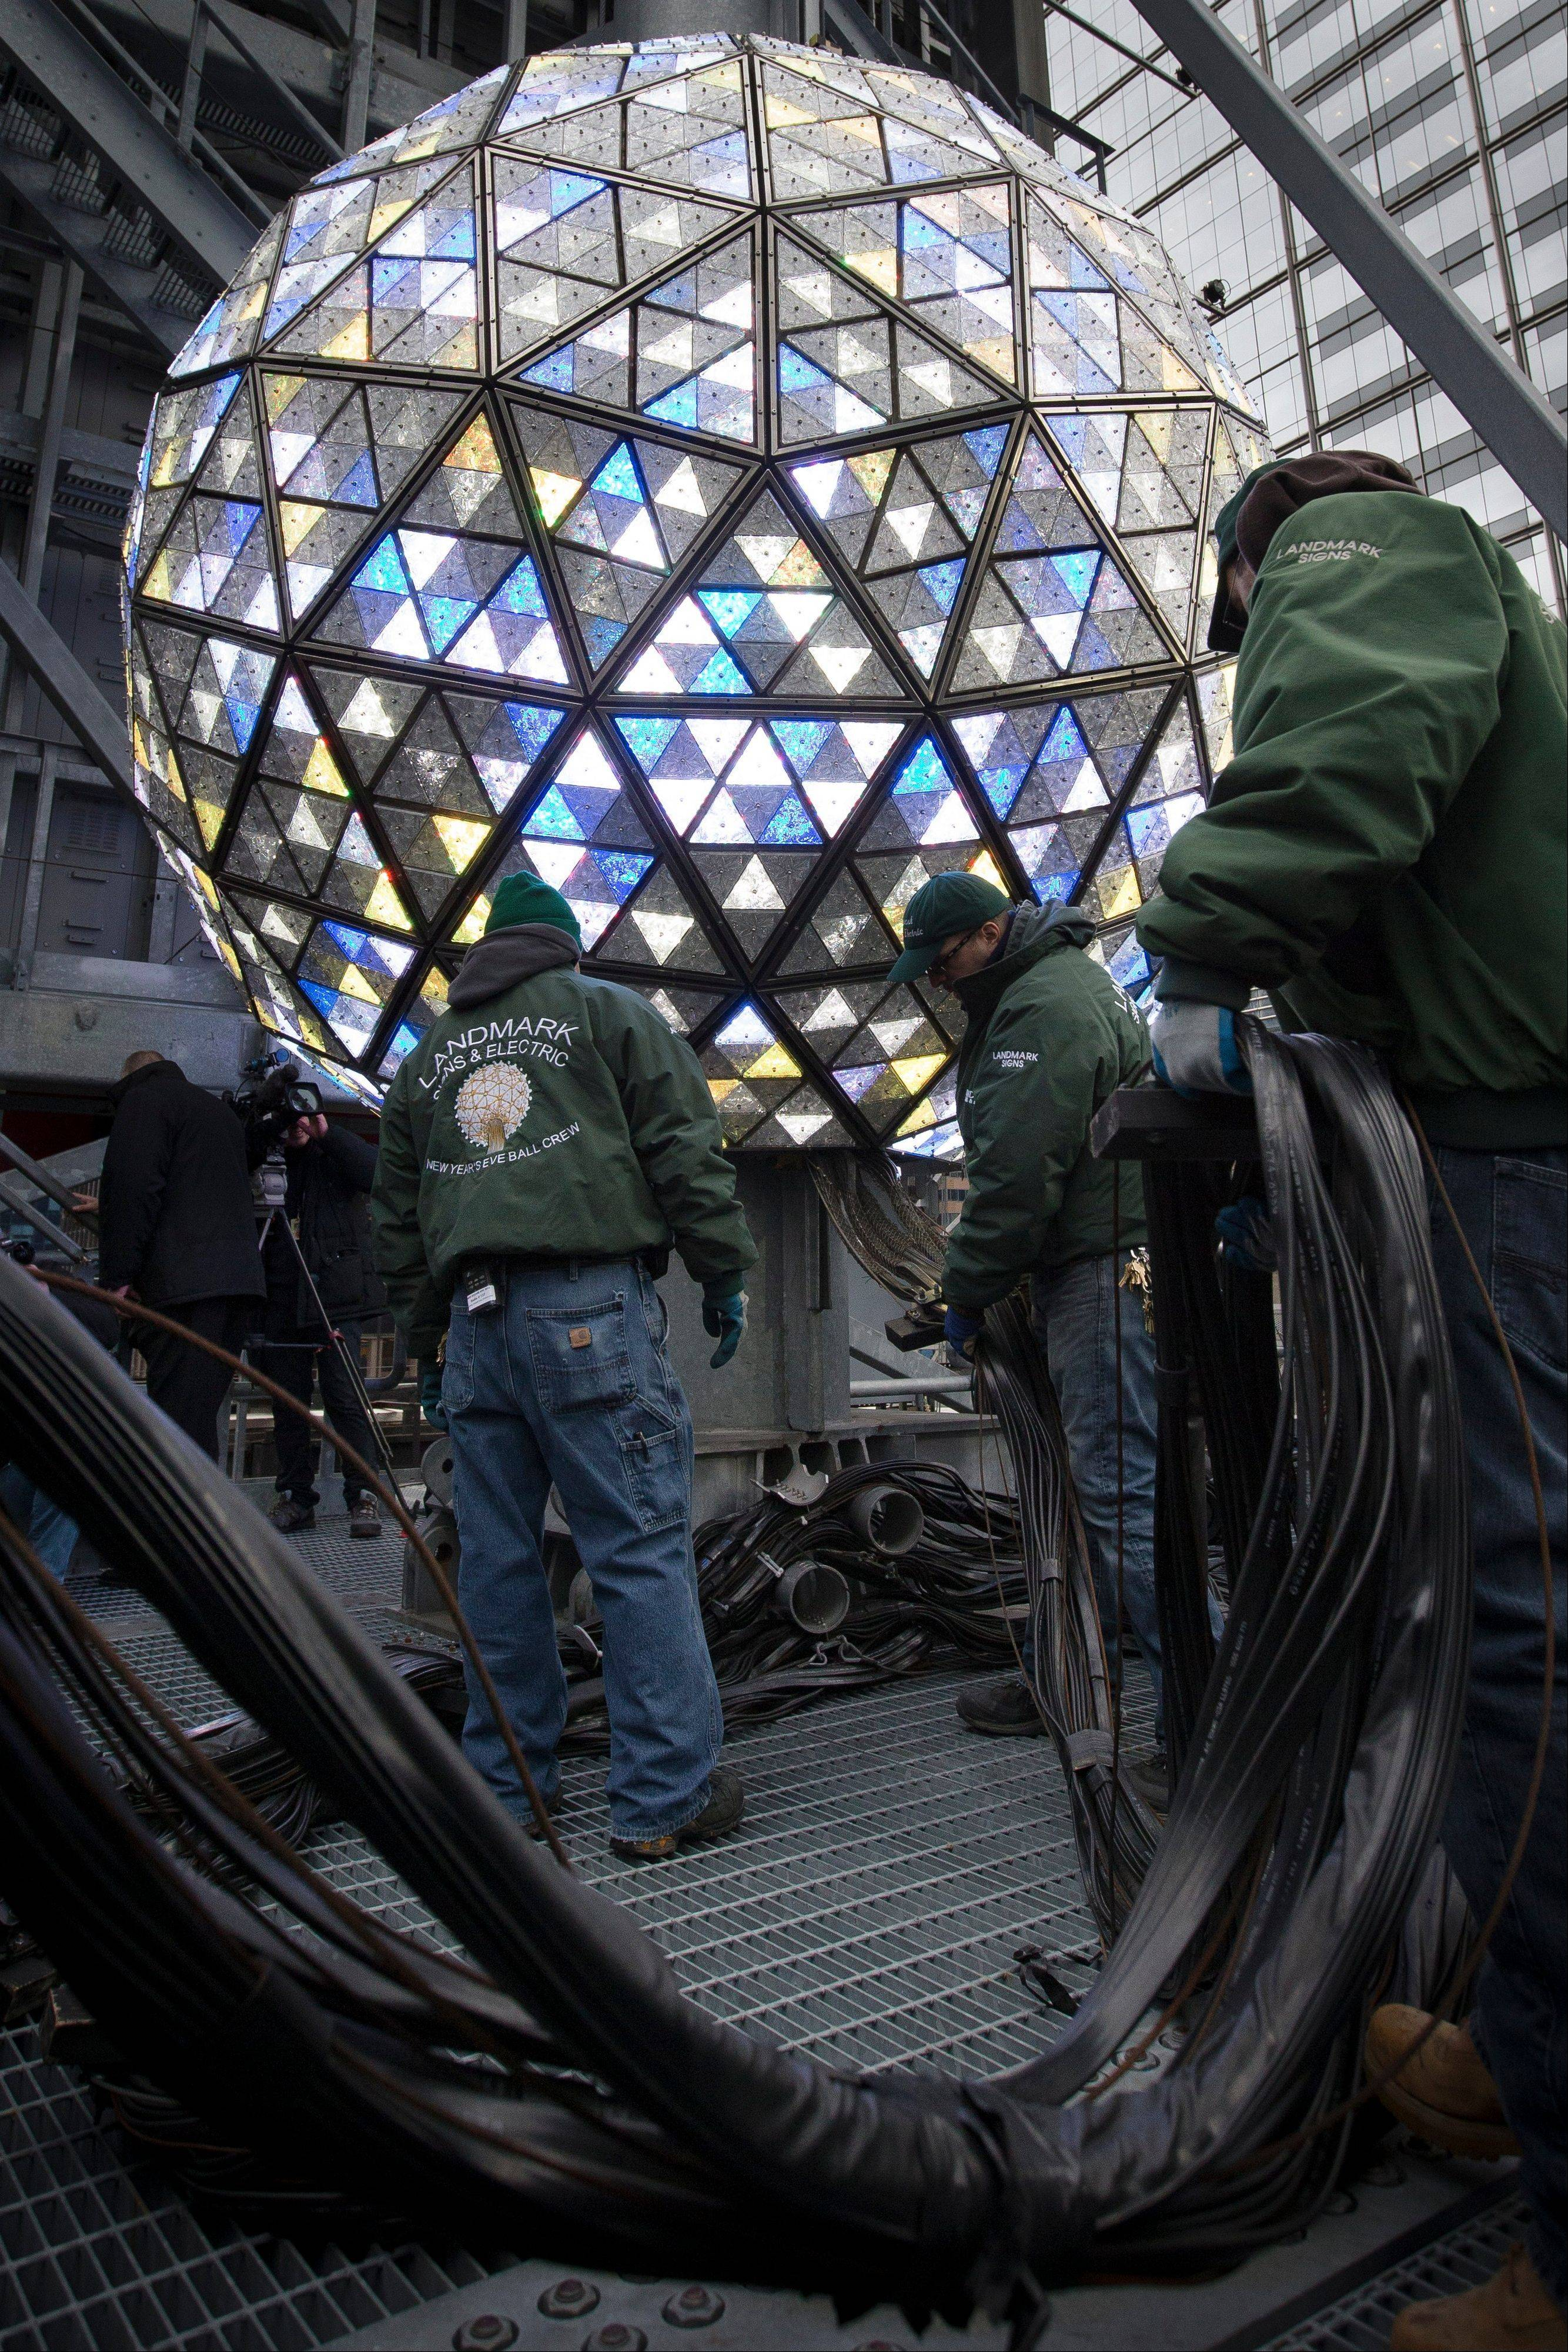 Workers handle cables attached to the New Year's Eve ball during a test atop the 1 Times Square building Monday in New York. The iconic 11,875-pound geodesic sphere covered in 2,688 Waterford Crystal triangles will descend a 130-foot pole to mark the stroke of midnight during the annual Times Square celebration.